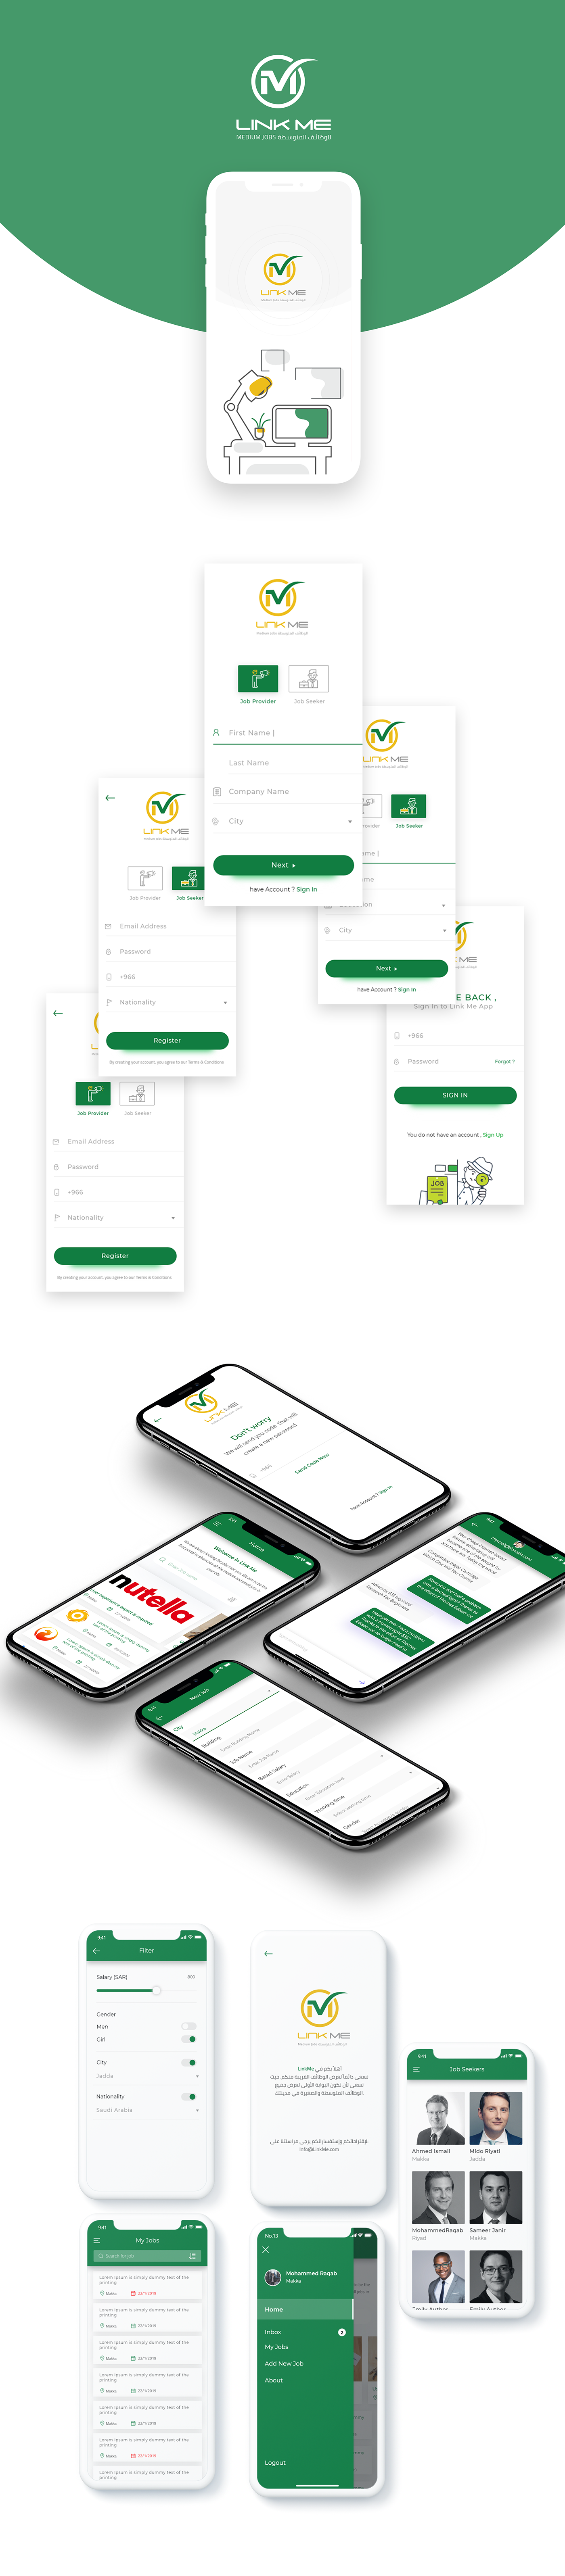 Jobs app mobile ios android